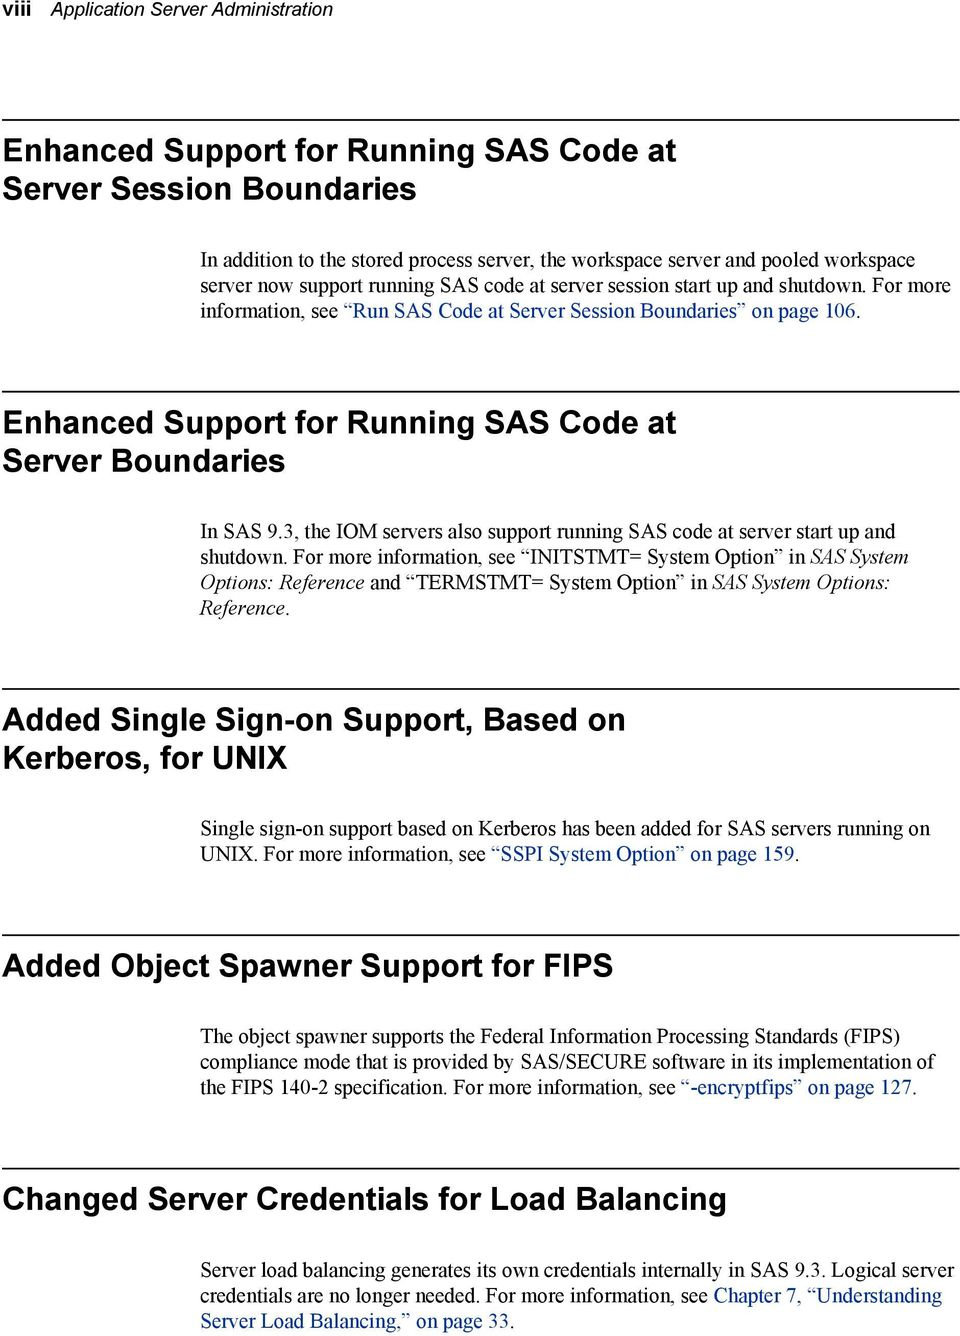 Enhanced Support for Running SAS Code at Server Boundaries In SAS 9.3, the IOM servers also support running SAS code at server start up and shutdown.